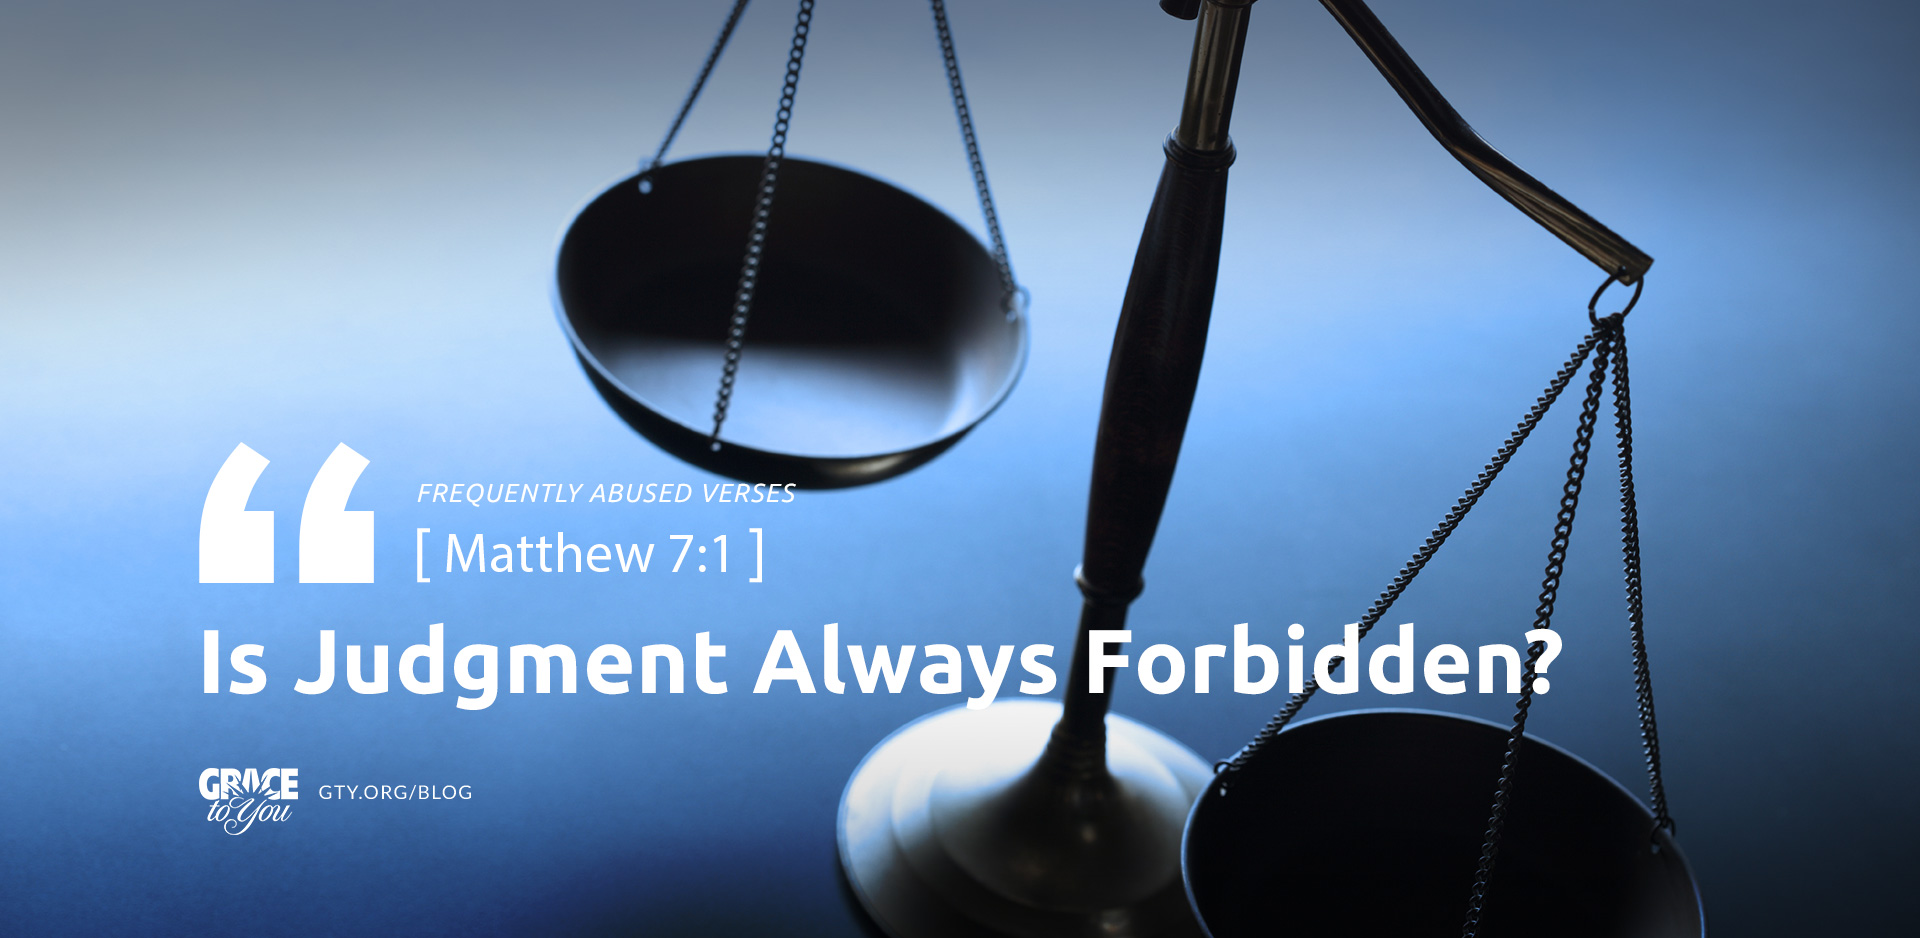 Frequently Abused Verses: Is Judgement Always Forbidden?